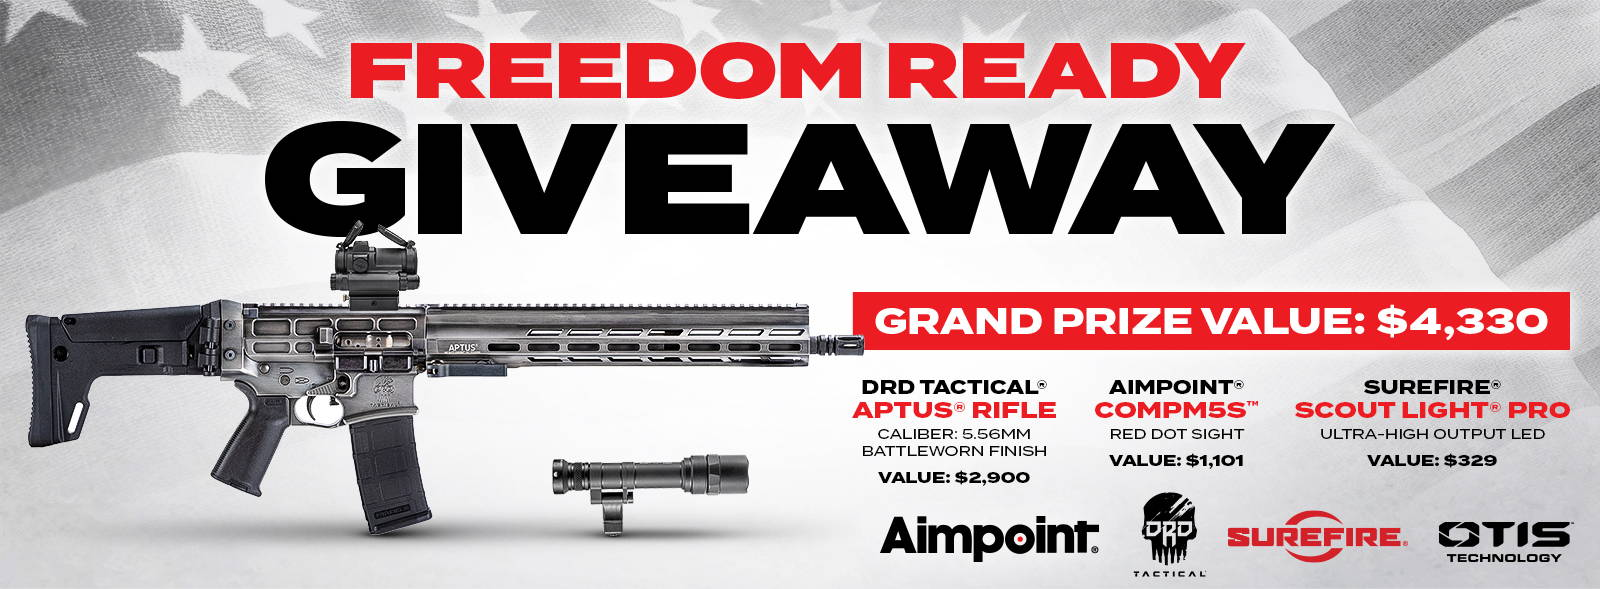 Freedom Ready Giveaway